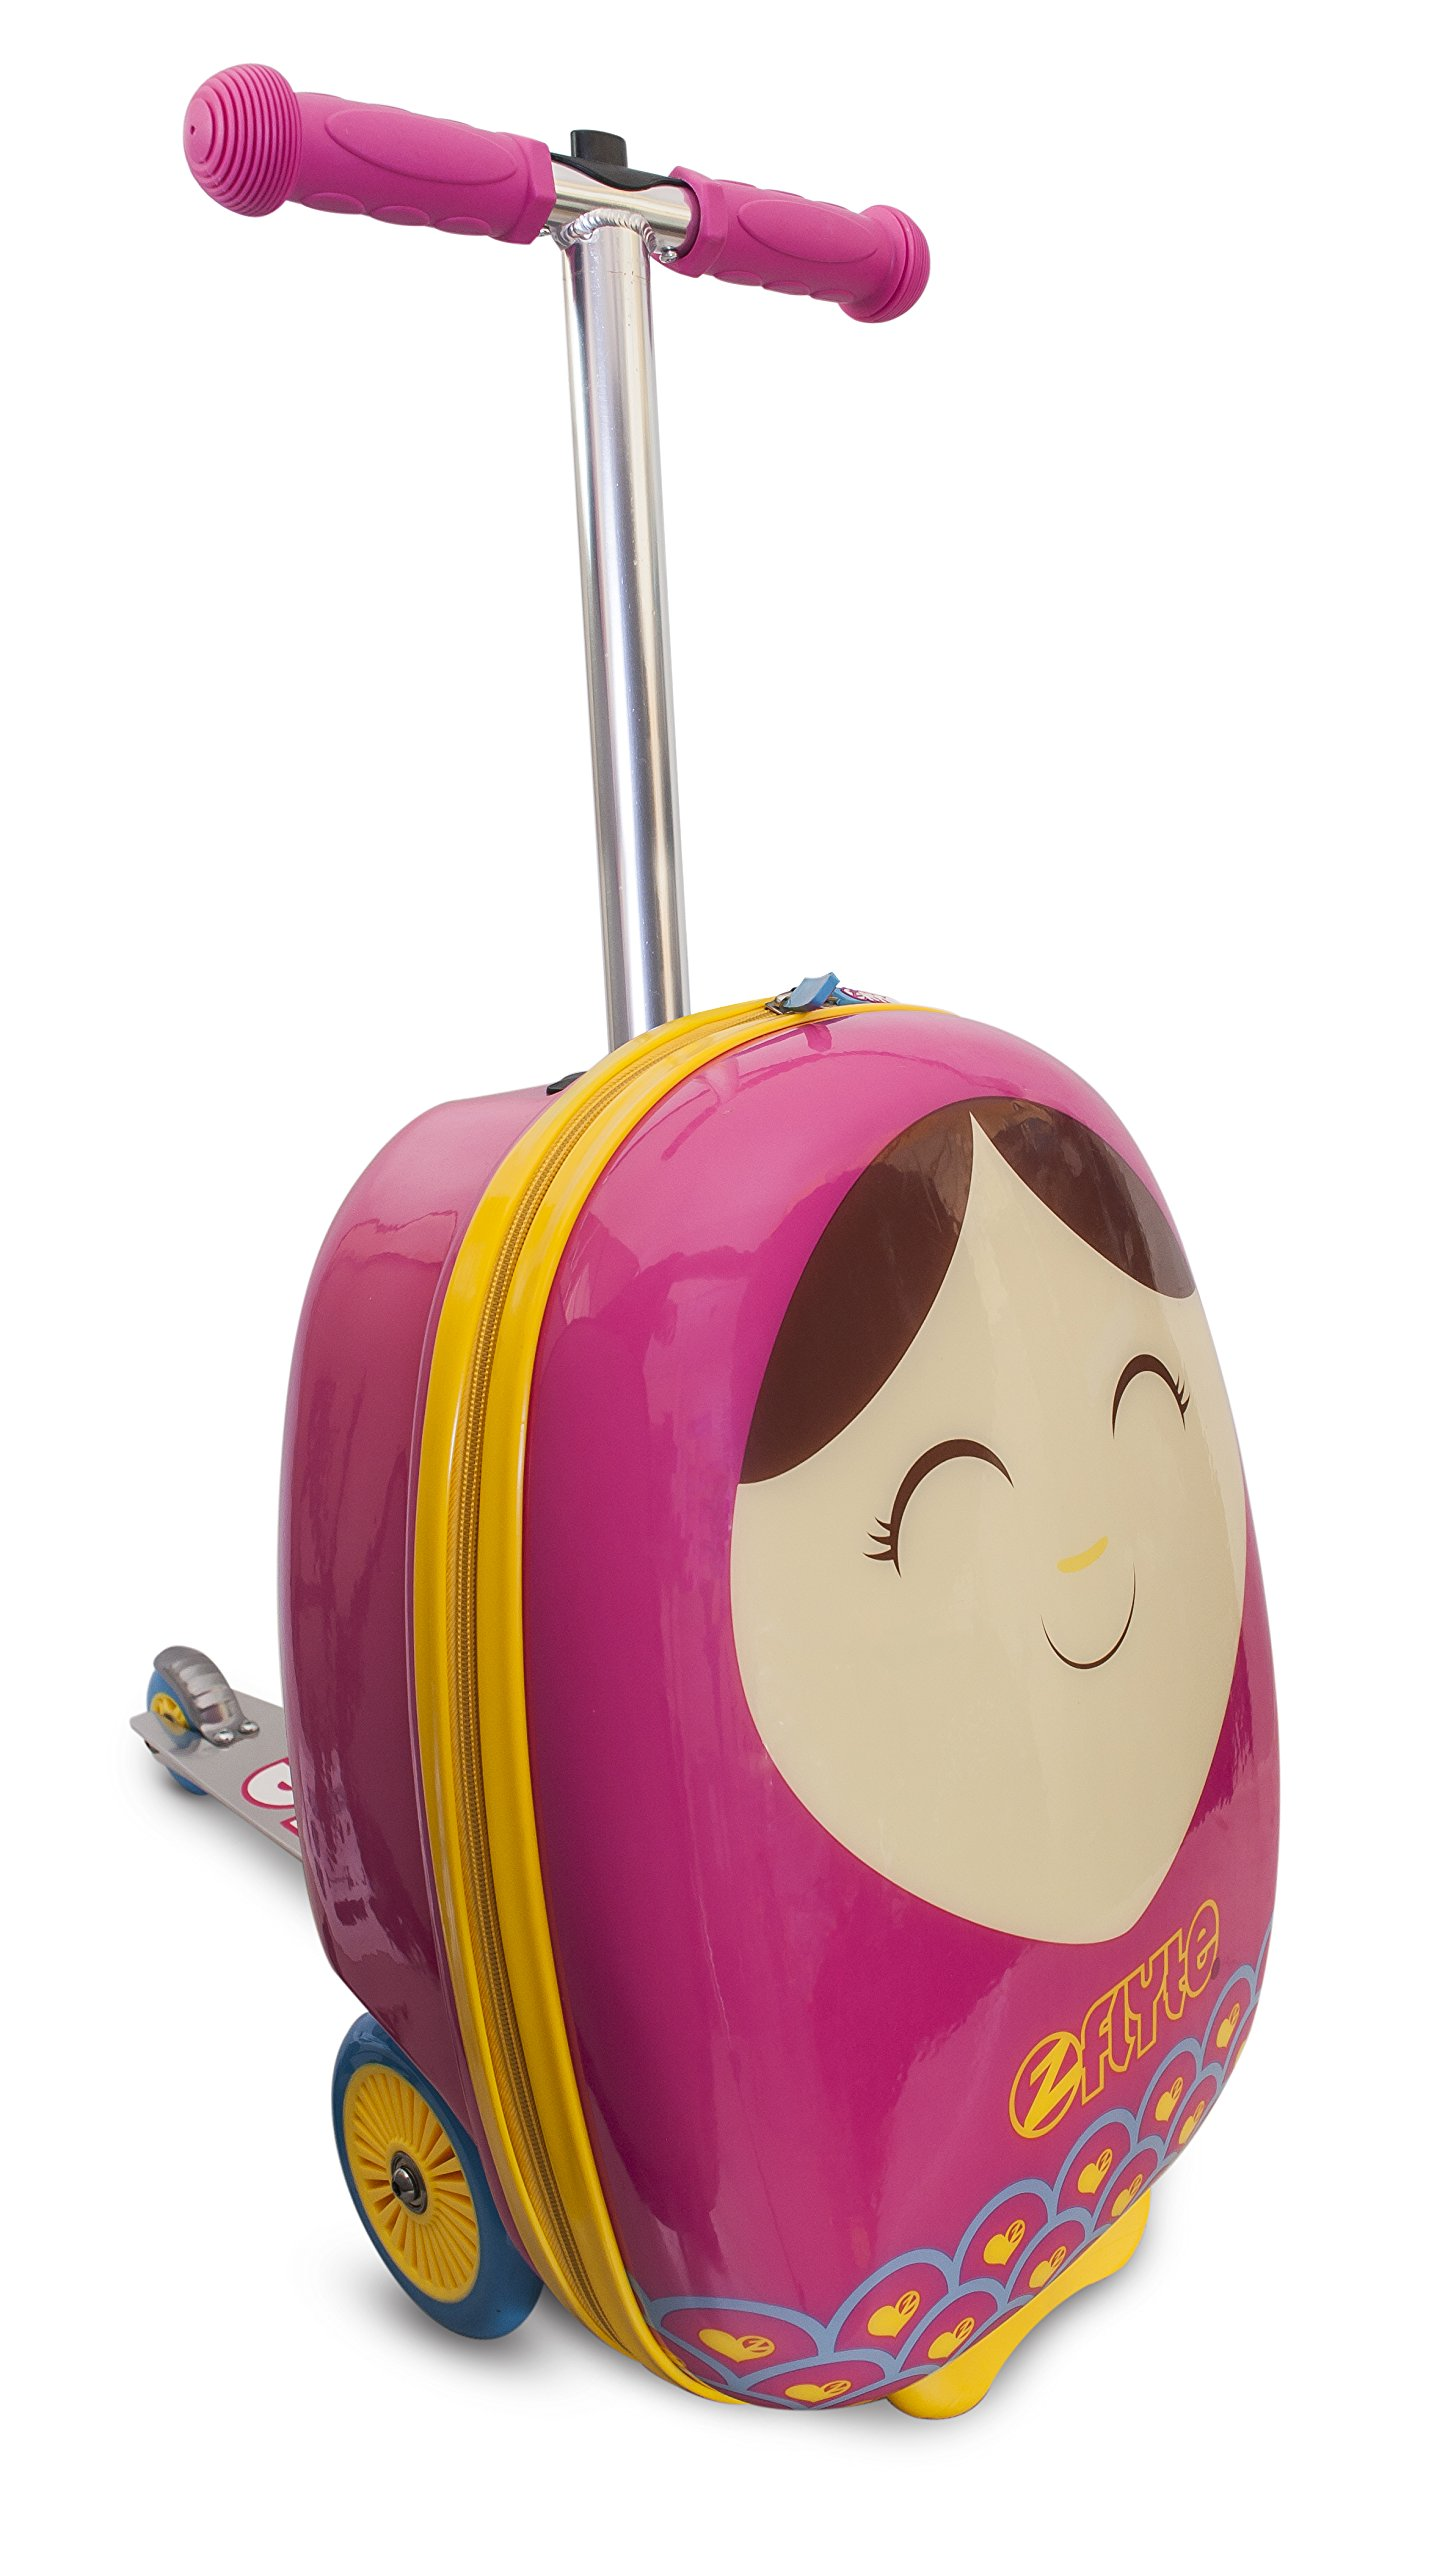 Zinc-Flyte-Midi-Scooter-Kindergepck-rosa-rose-Carry-on